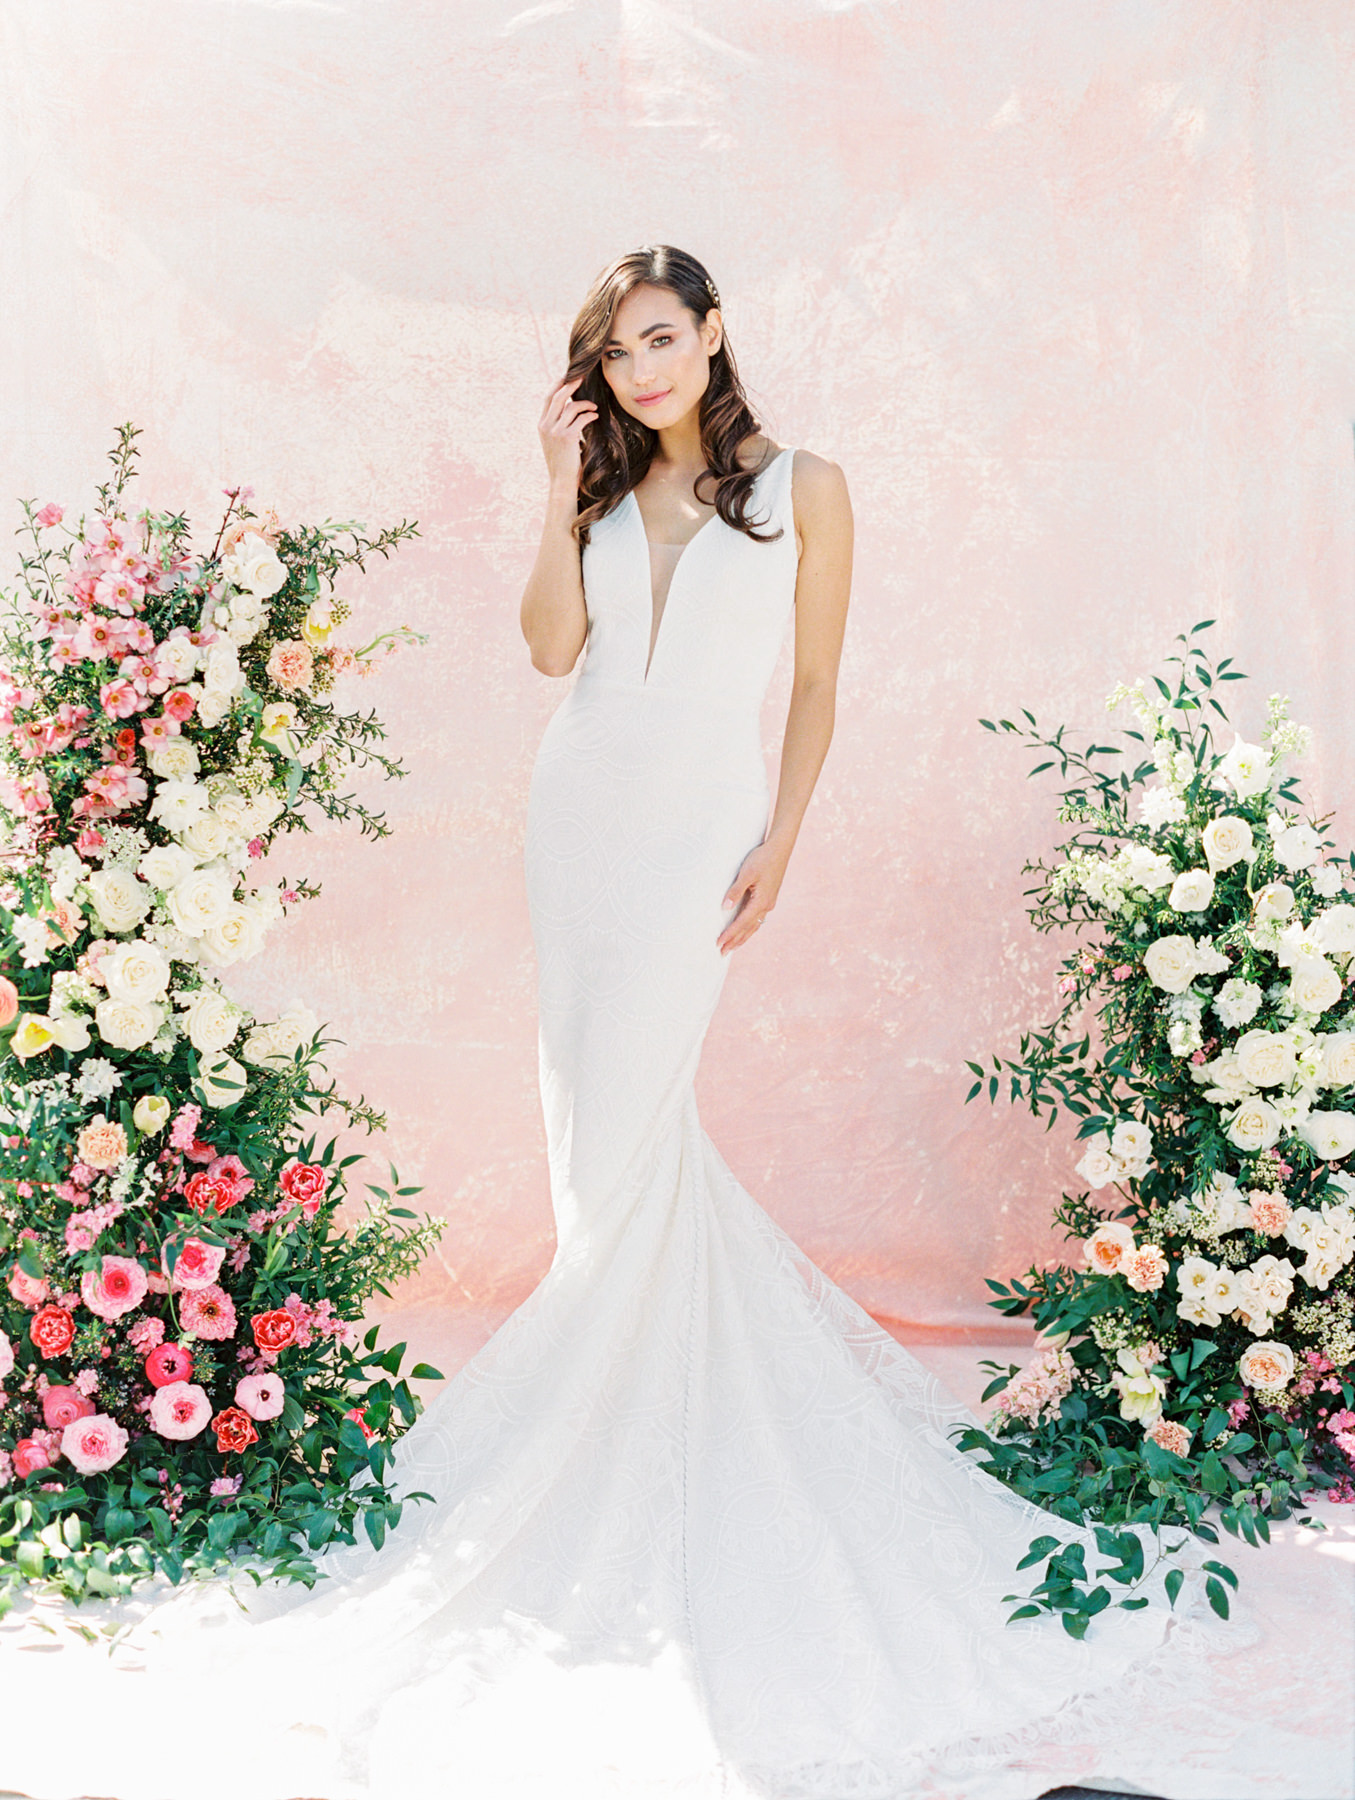 Asymmetrical floral arch with pink and ivory roses, sweet peas, ranunculus, carnations, and greenery with a pink painterly backdrop. Kelly Faetanini Ariana (fashion-grade Neoprene and lace fit-to-flare wedding dress is destination wedding-approved. With a delicate lace and flattering plunging V neckline silhouette and low back) gown from The White Flower. Hair down and curled with hair vine. Cavin Elizabeth Photography - film photographer in San Diego.